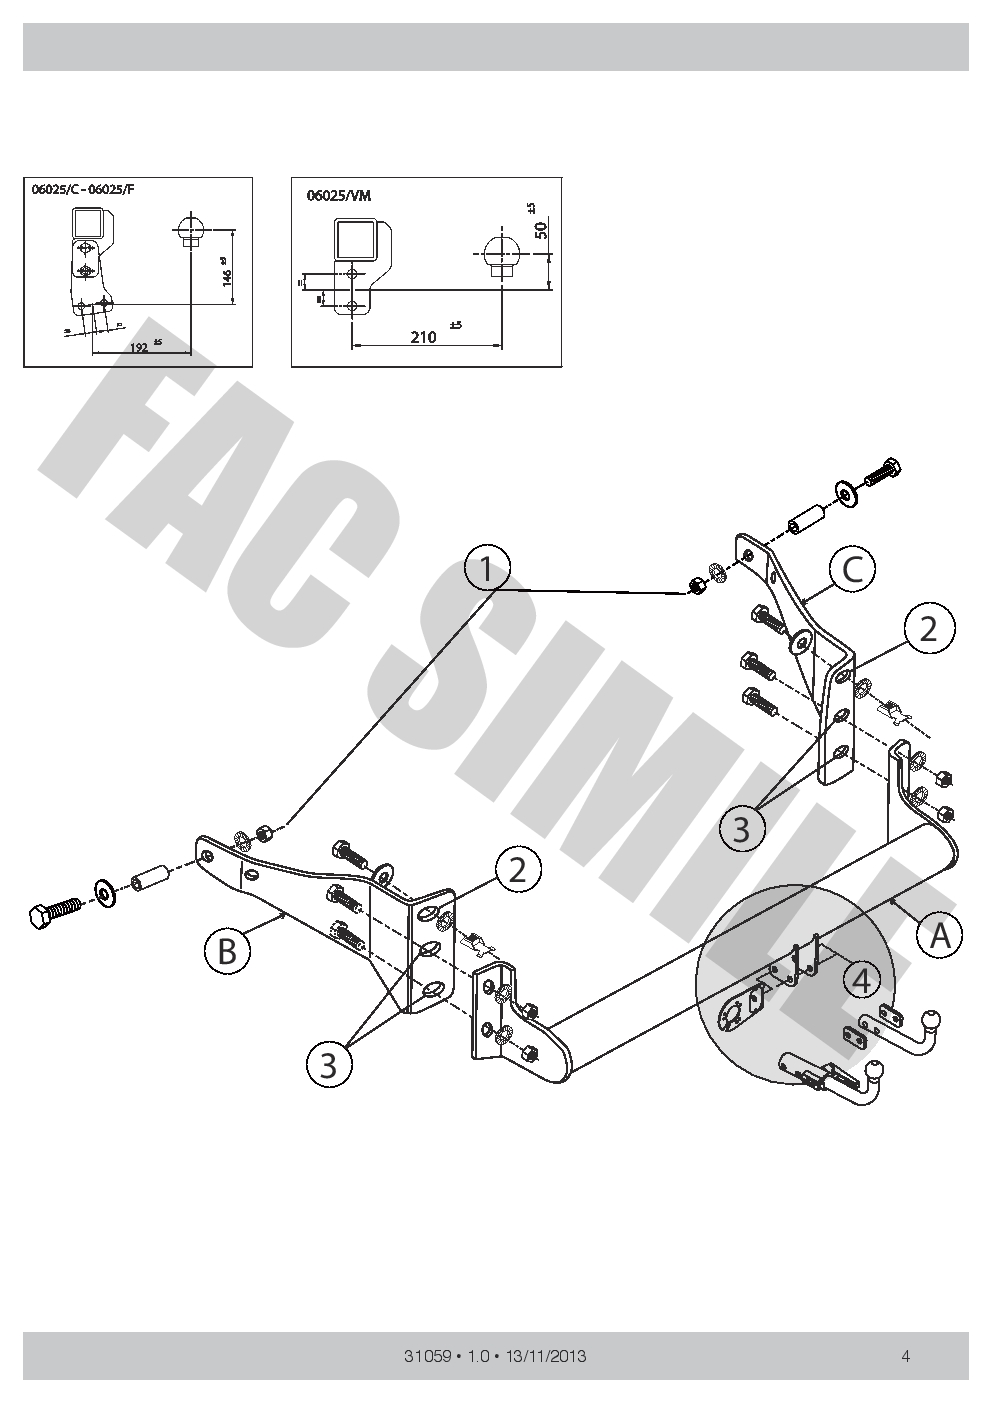 Detachable Towbar 7 Pin Wiring Bypass Relay Tow Bar For Renault Scenic Diagram Megane